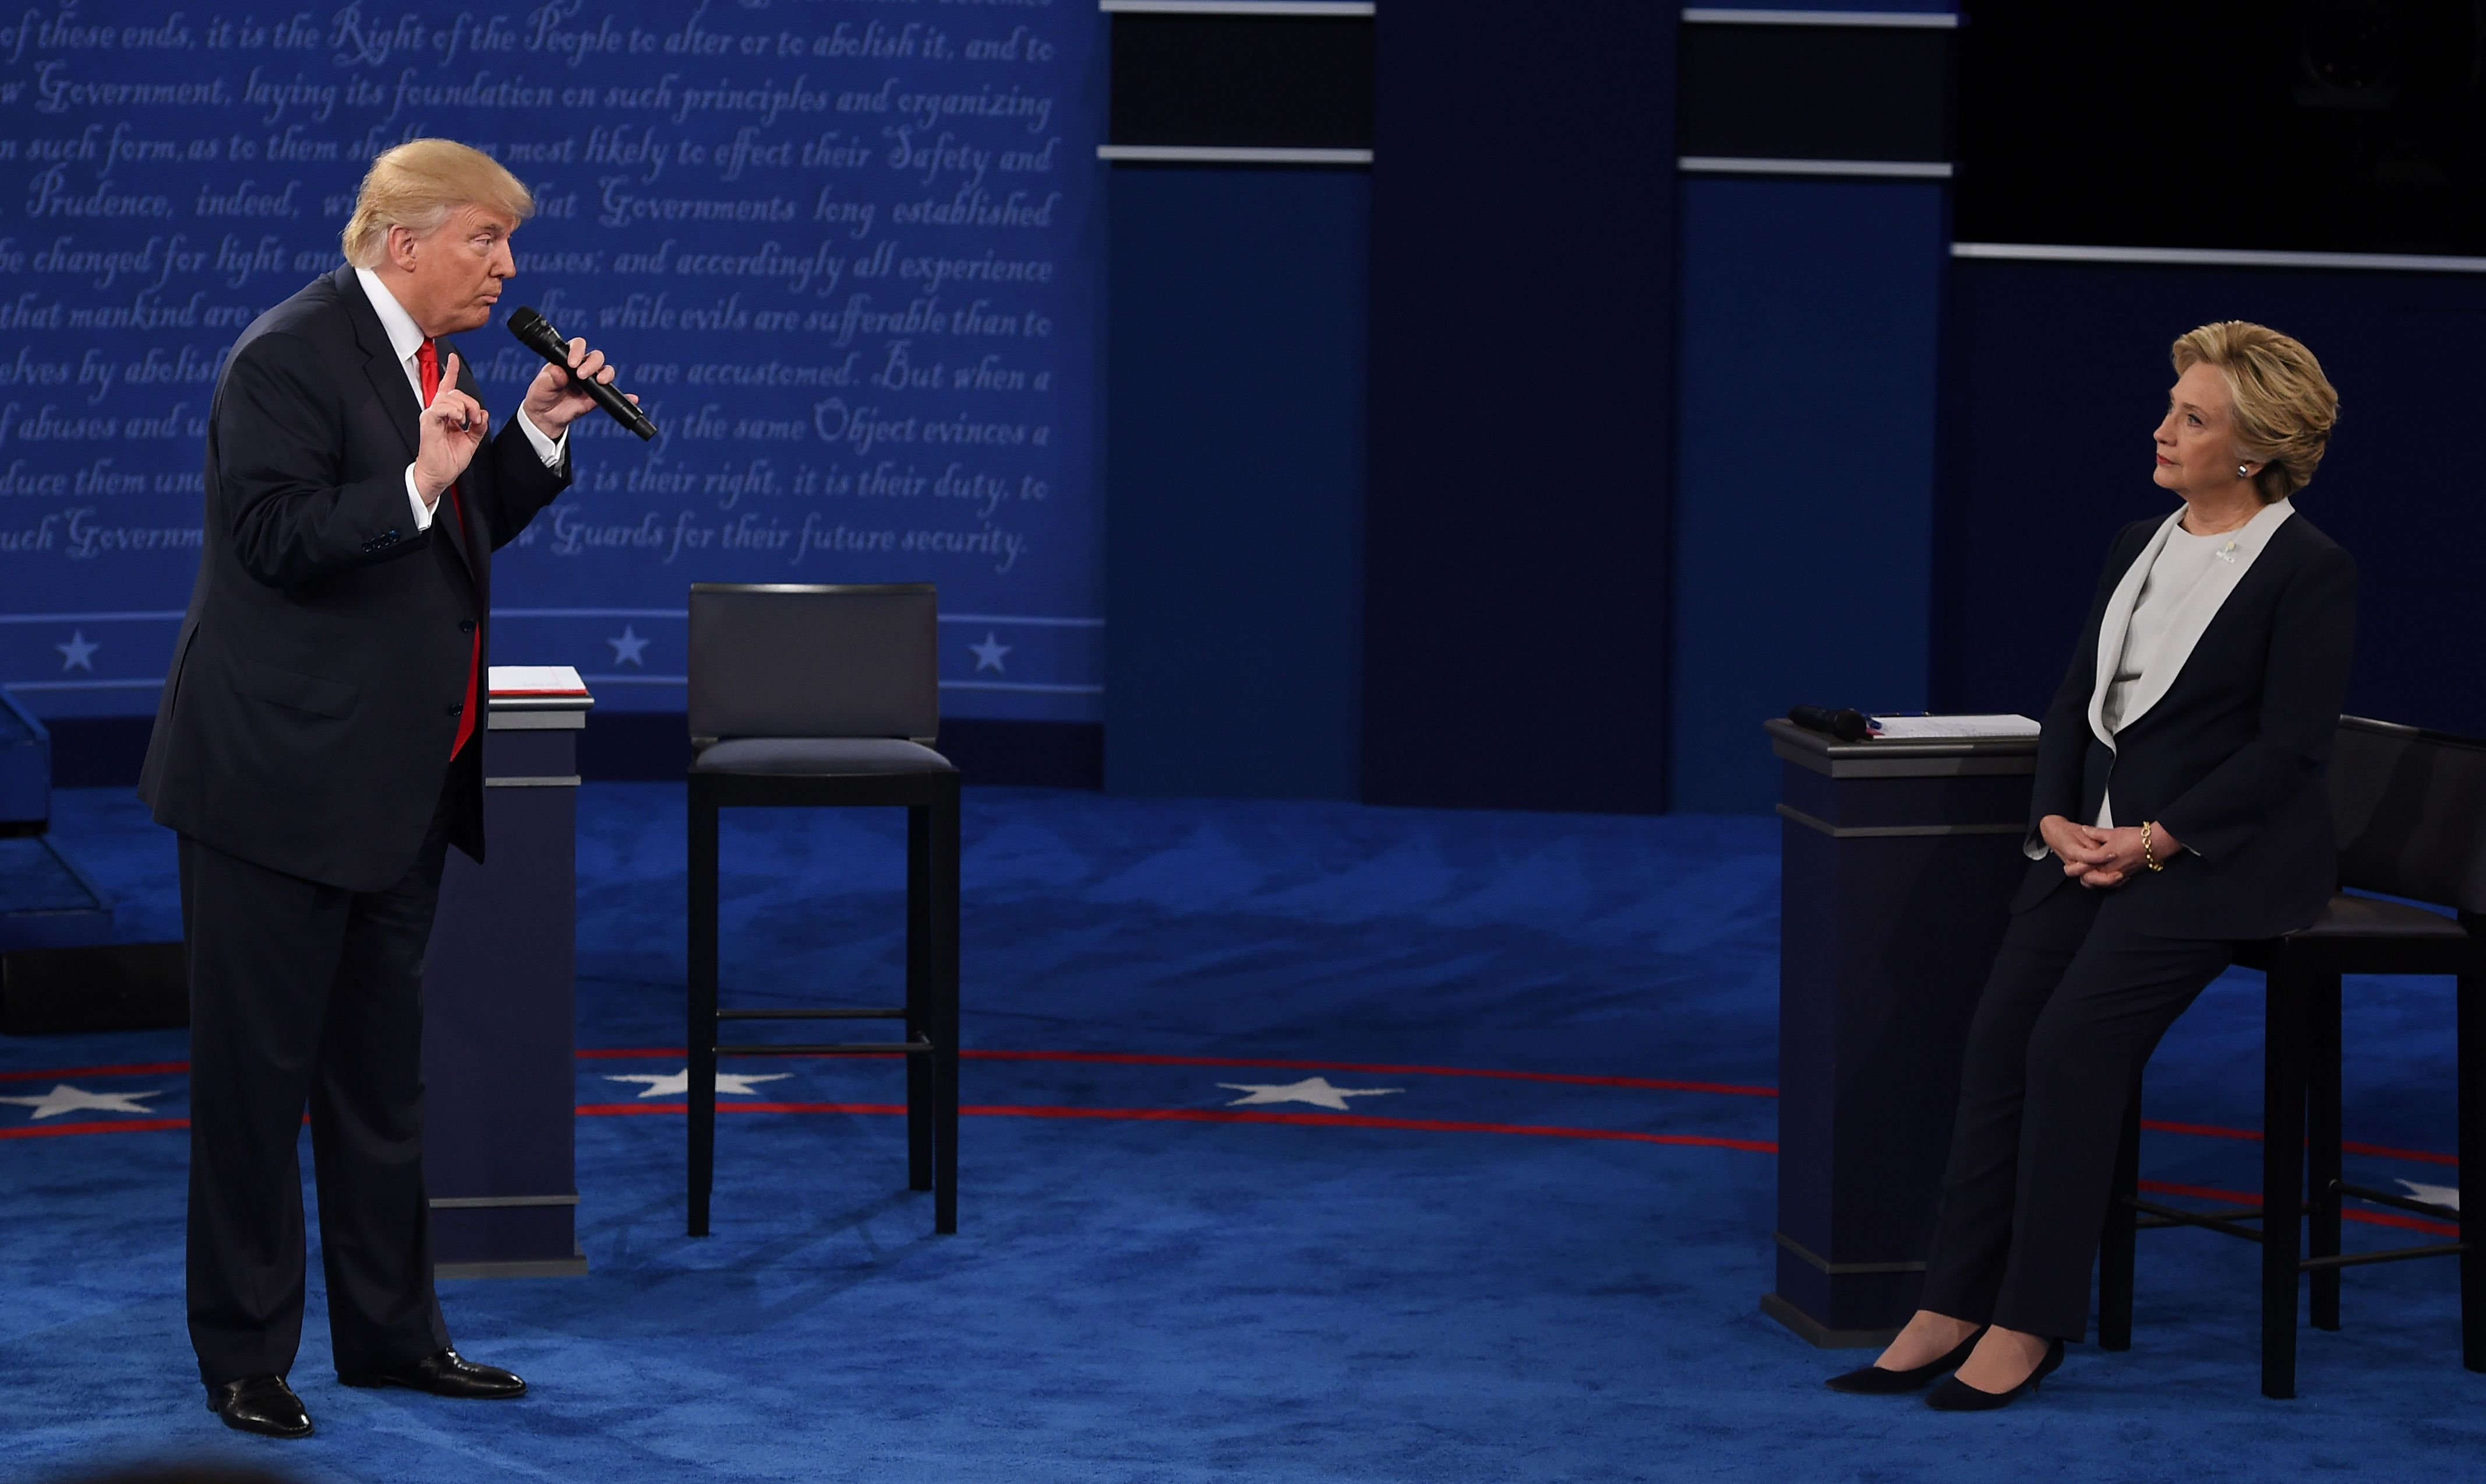 Democratic presidential candidate Hillary Clinton and Republican presidential candidate Donald Trump debate during the second presidential debate at Washington University in St. Louis on Oct. 9, 2016.